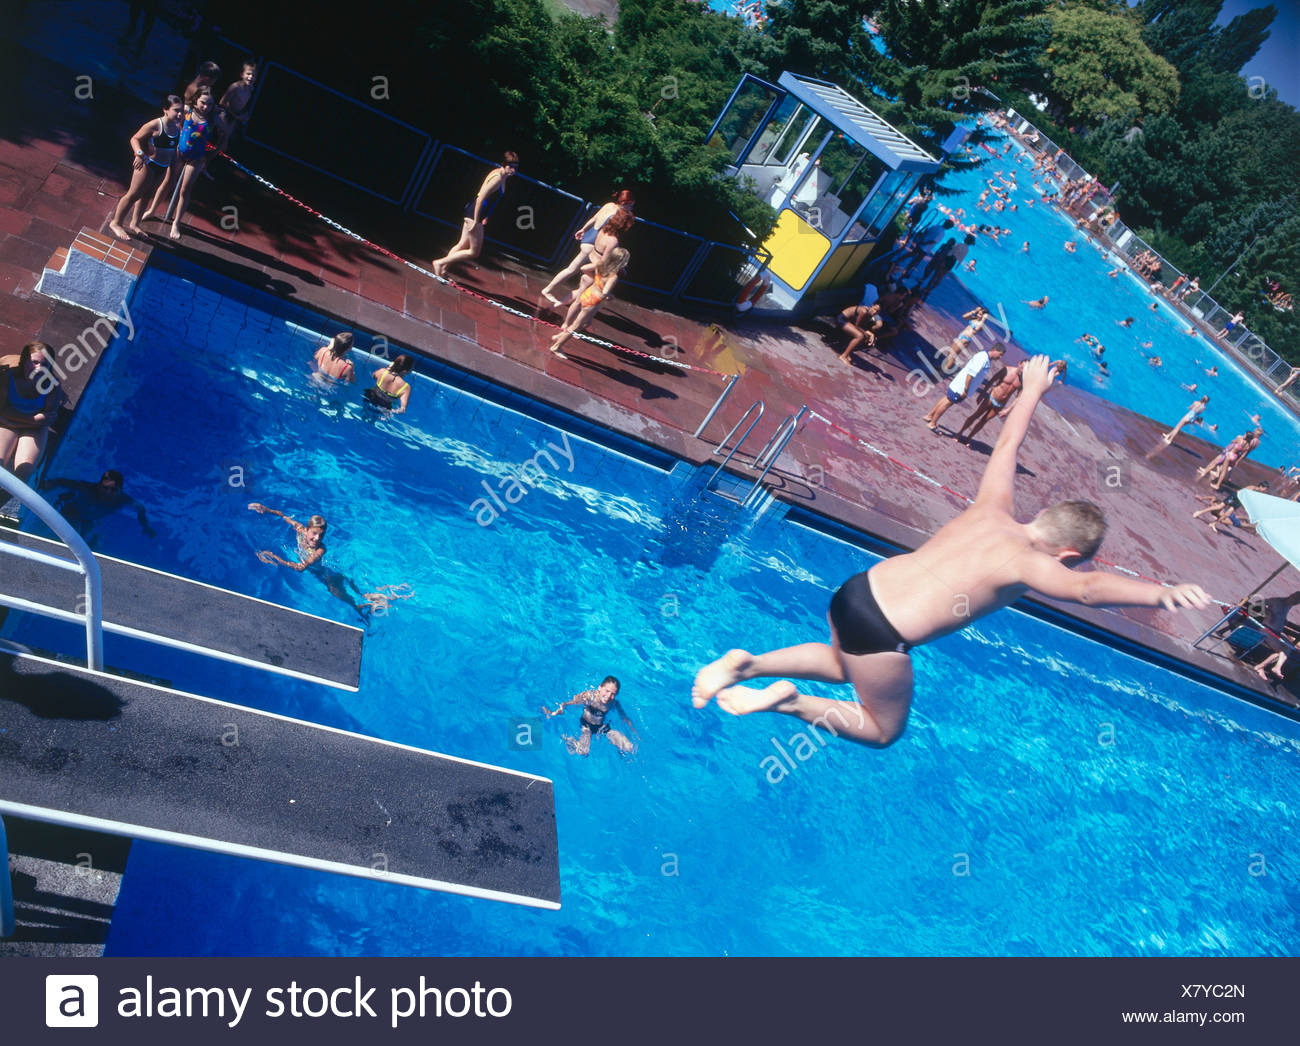 Jumping From Diving Board Stock Photos Jumping From Diving Board Stock Images Alamy